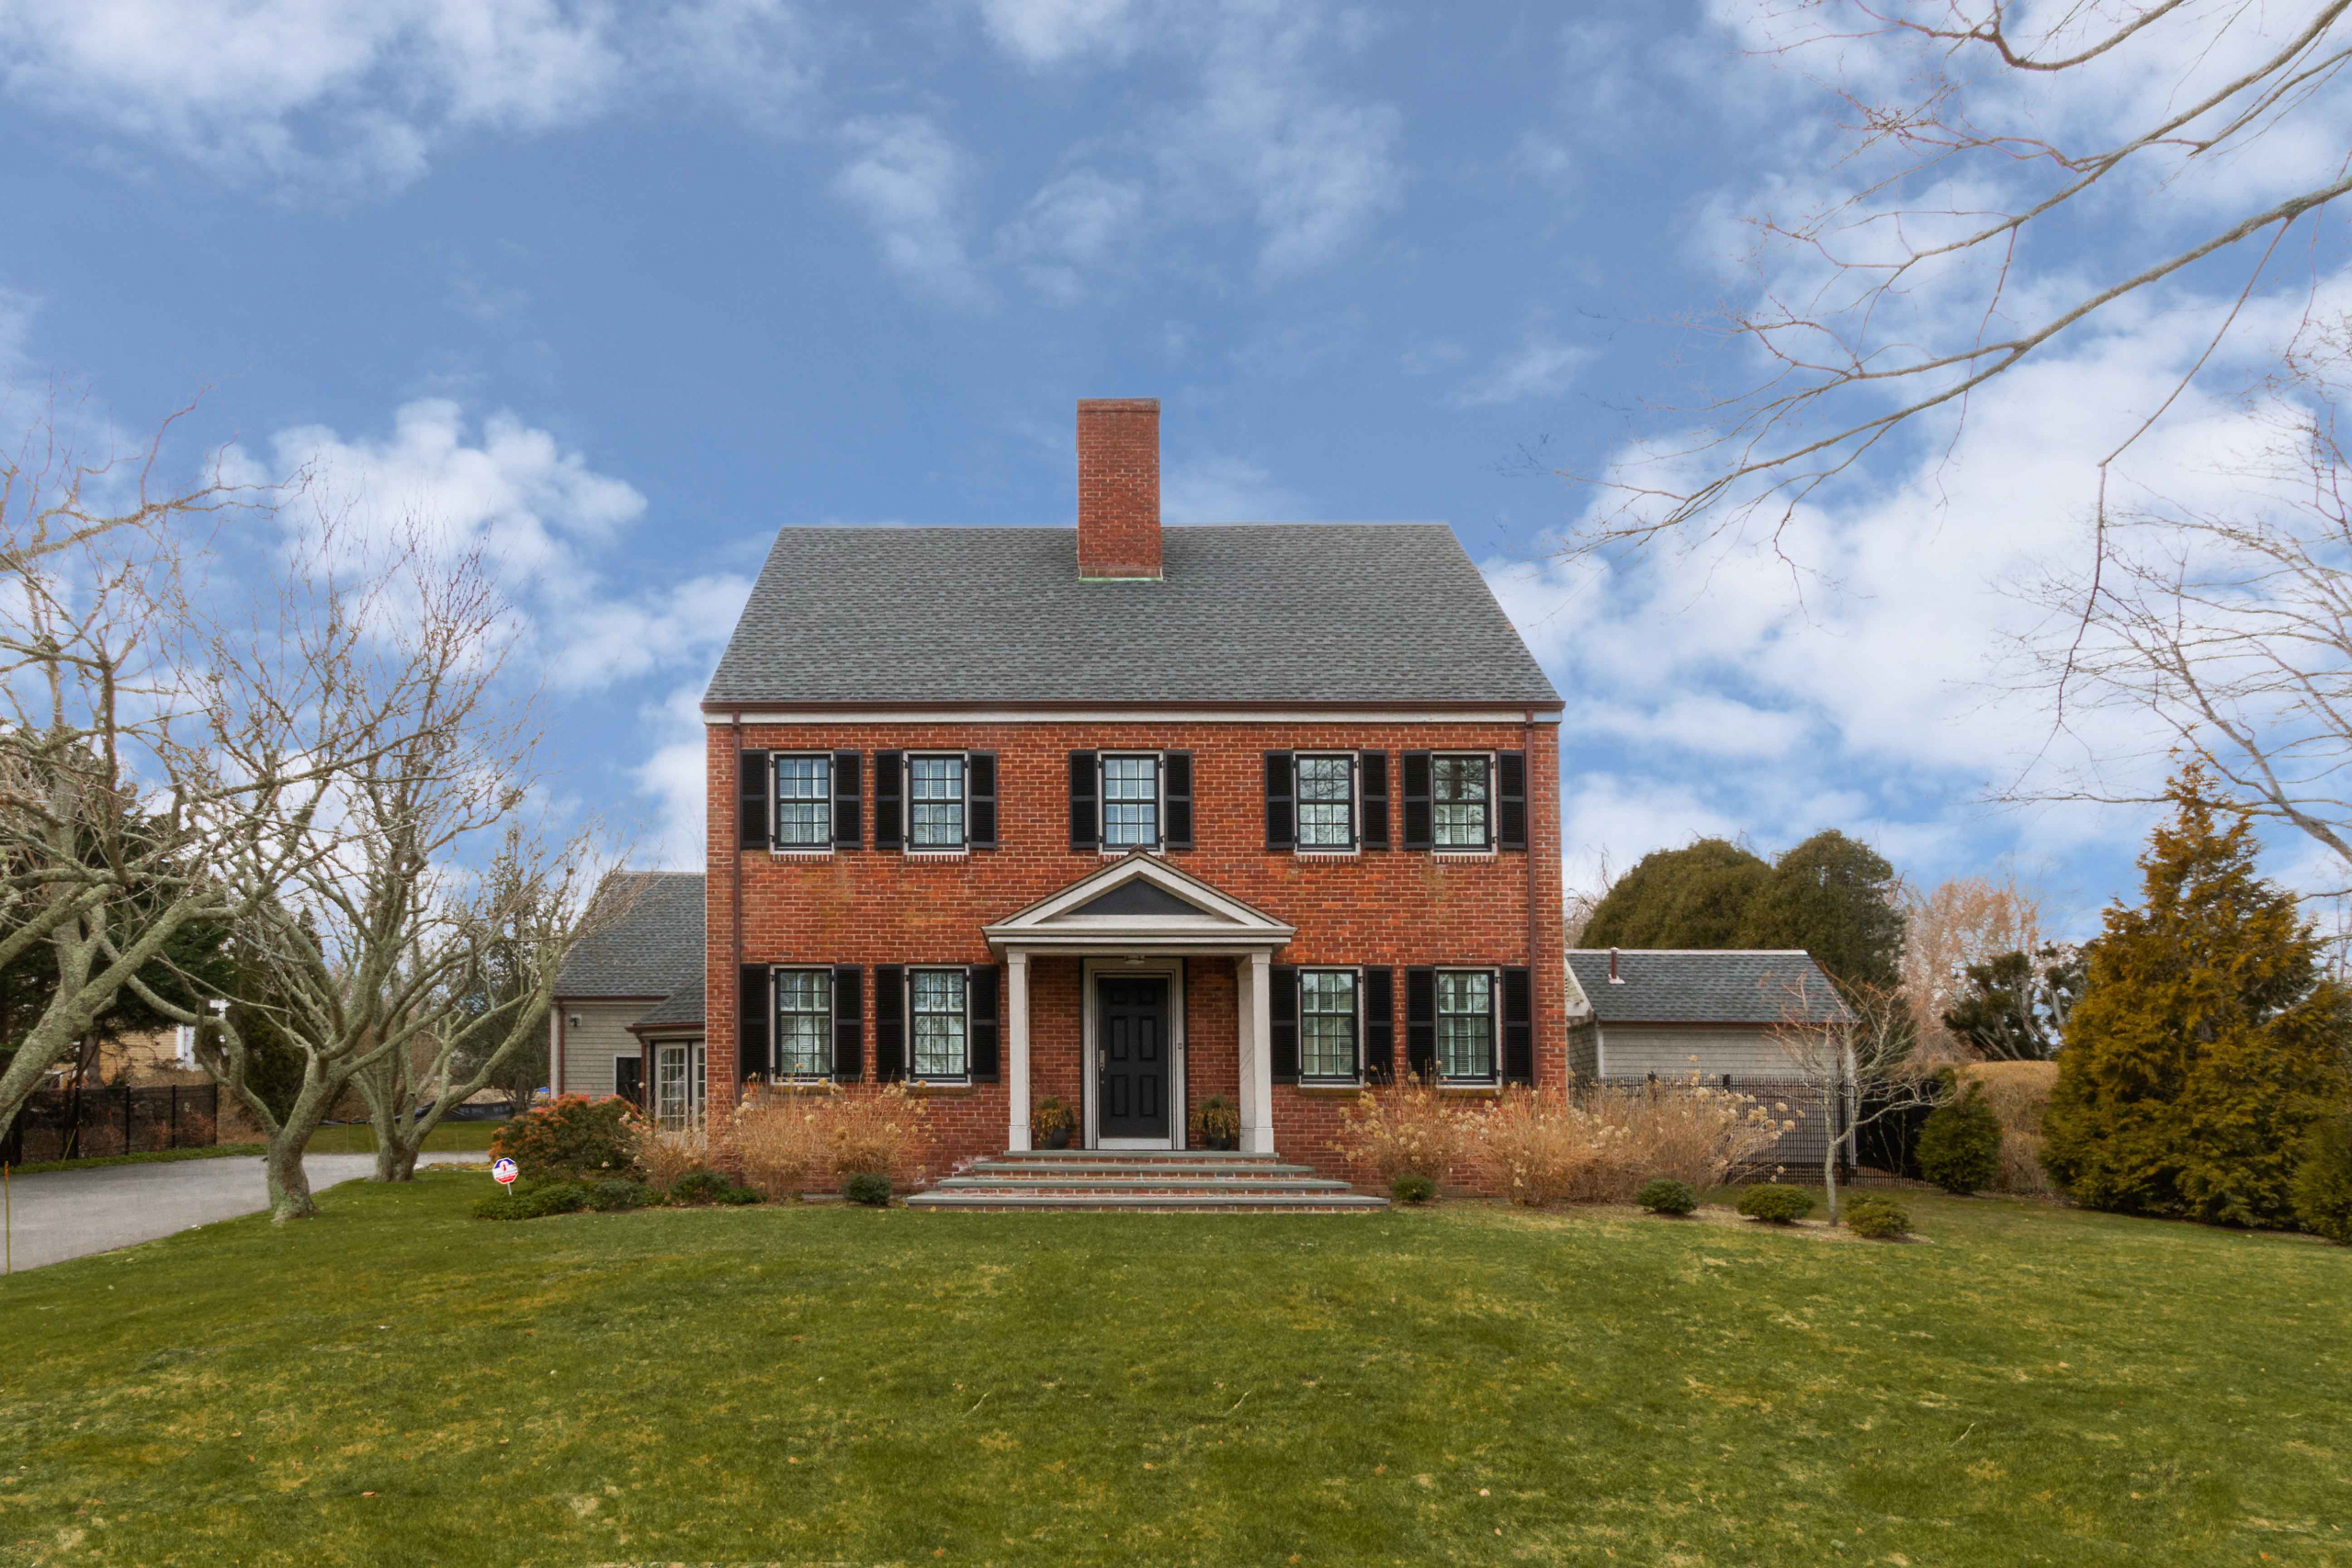 ALEX THURSBY OF LILA DELMAN COMPASS REPRESENTS BUYER  OF A SIGNFICANT HOME IN NEWPORT'S KAY/CATHERINE NEIGHBOORHOOD